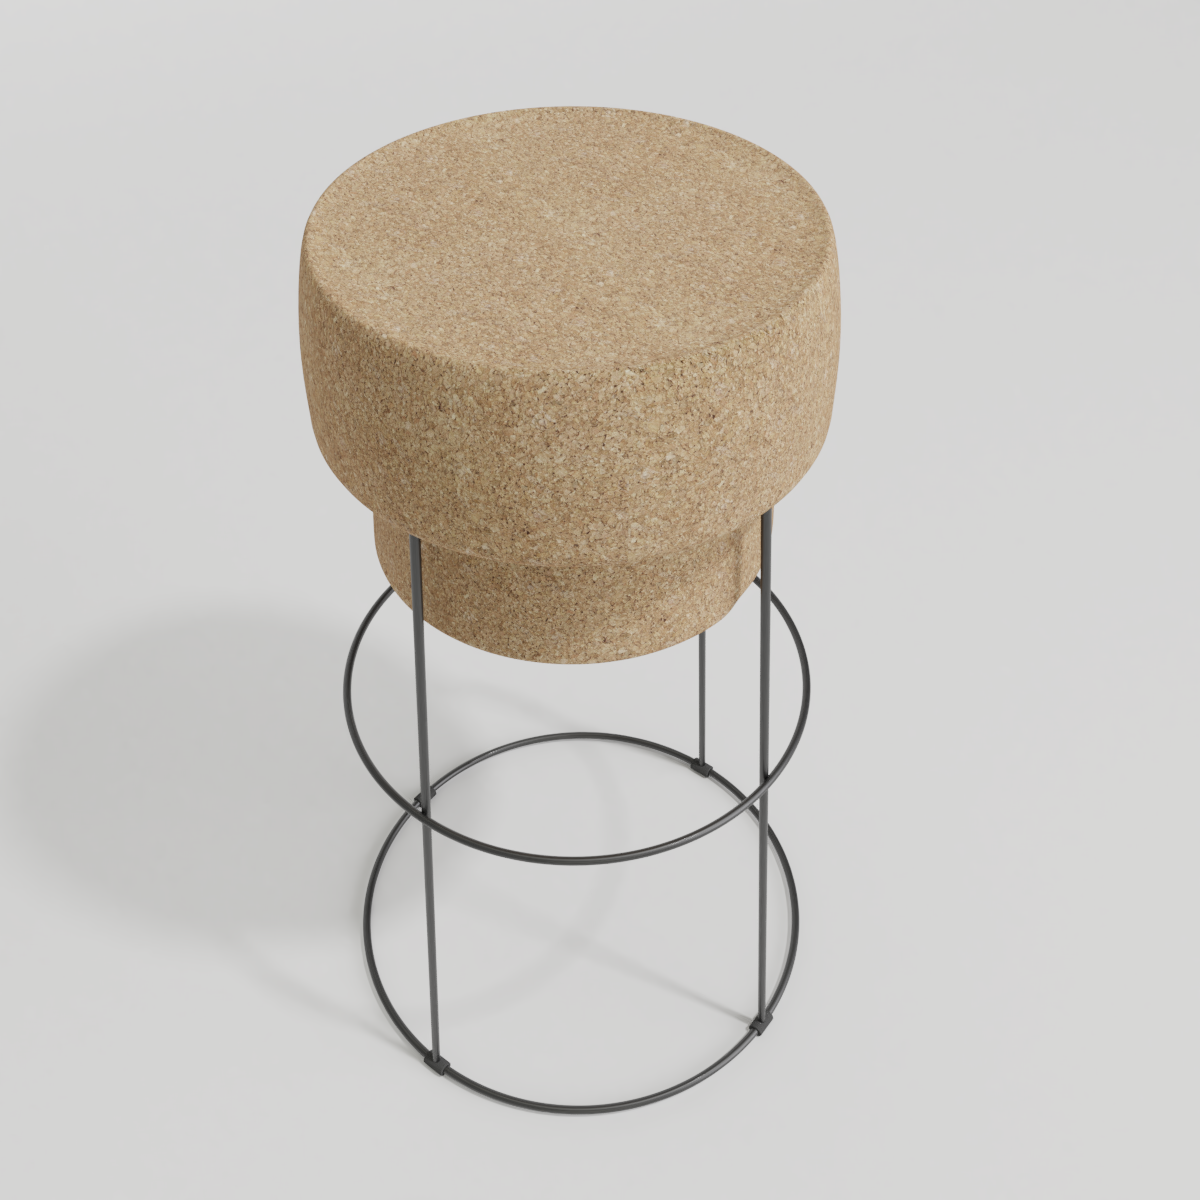 Cork stool preview image 2